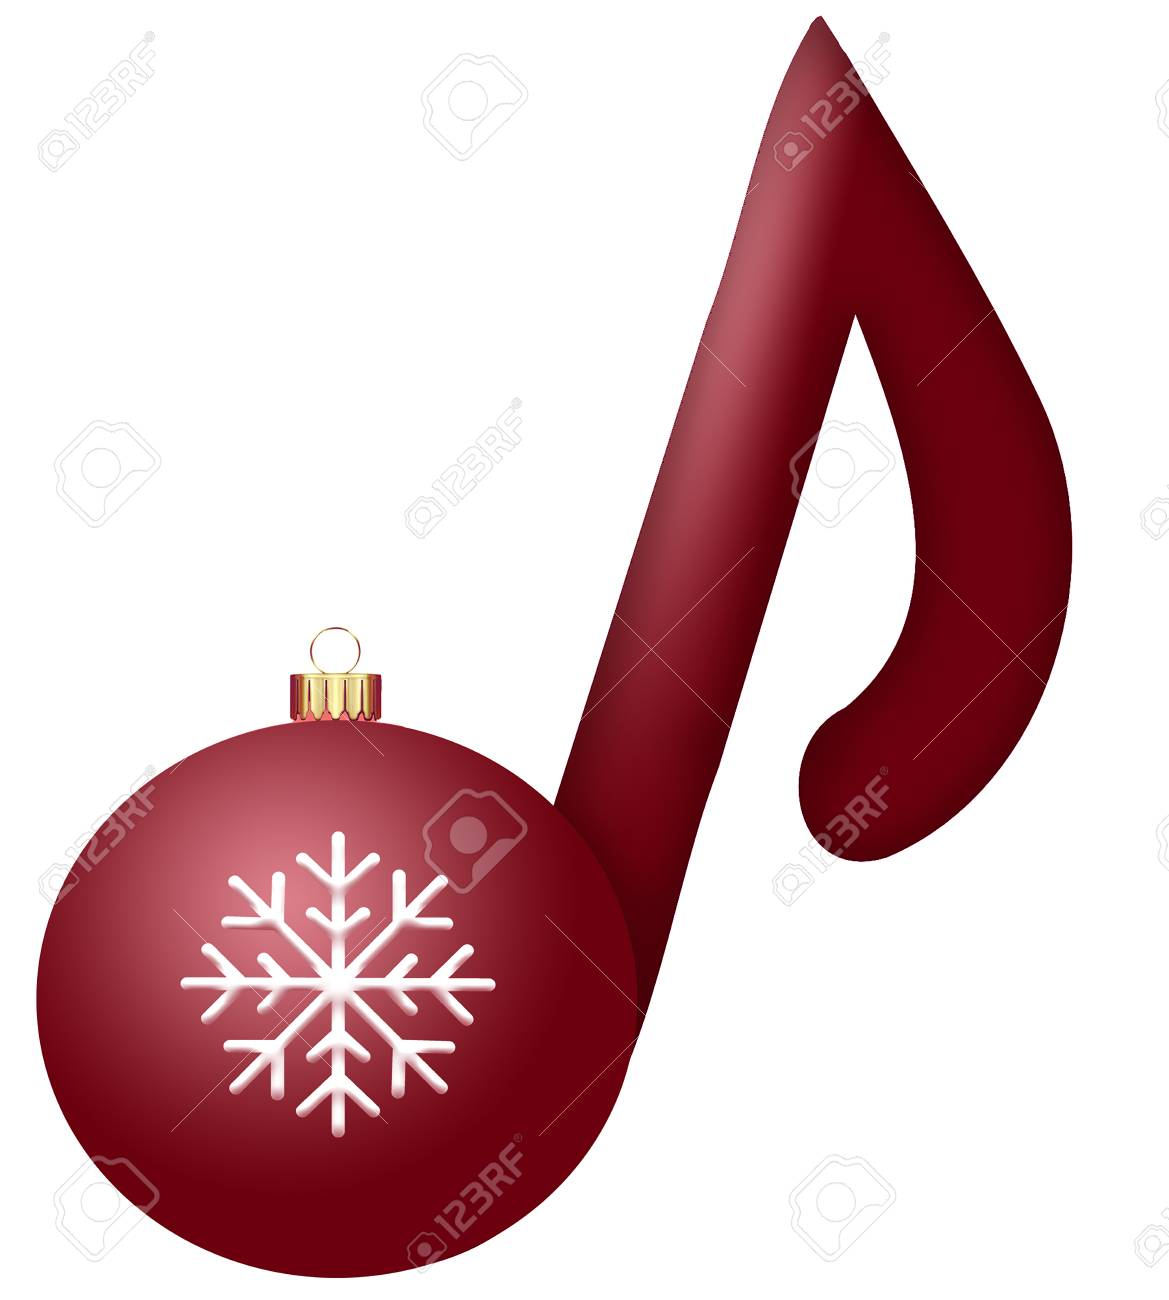 Christmas Music Notes.Stock Illustration